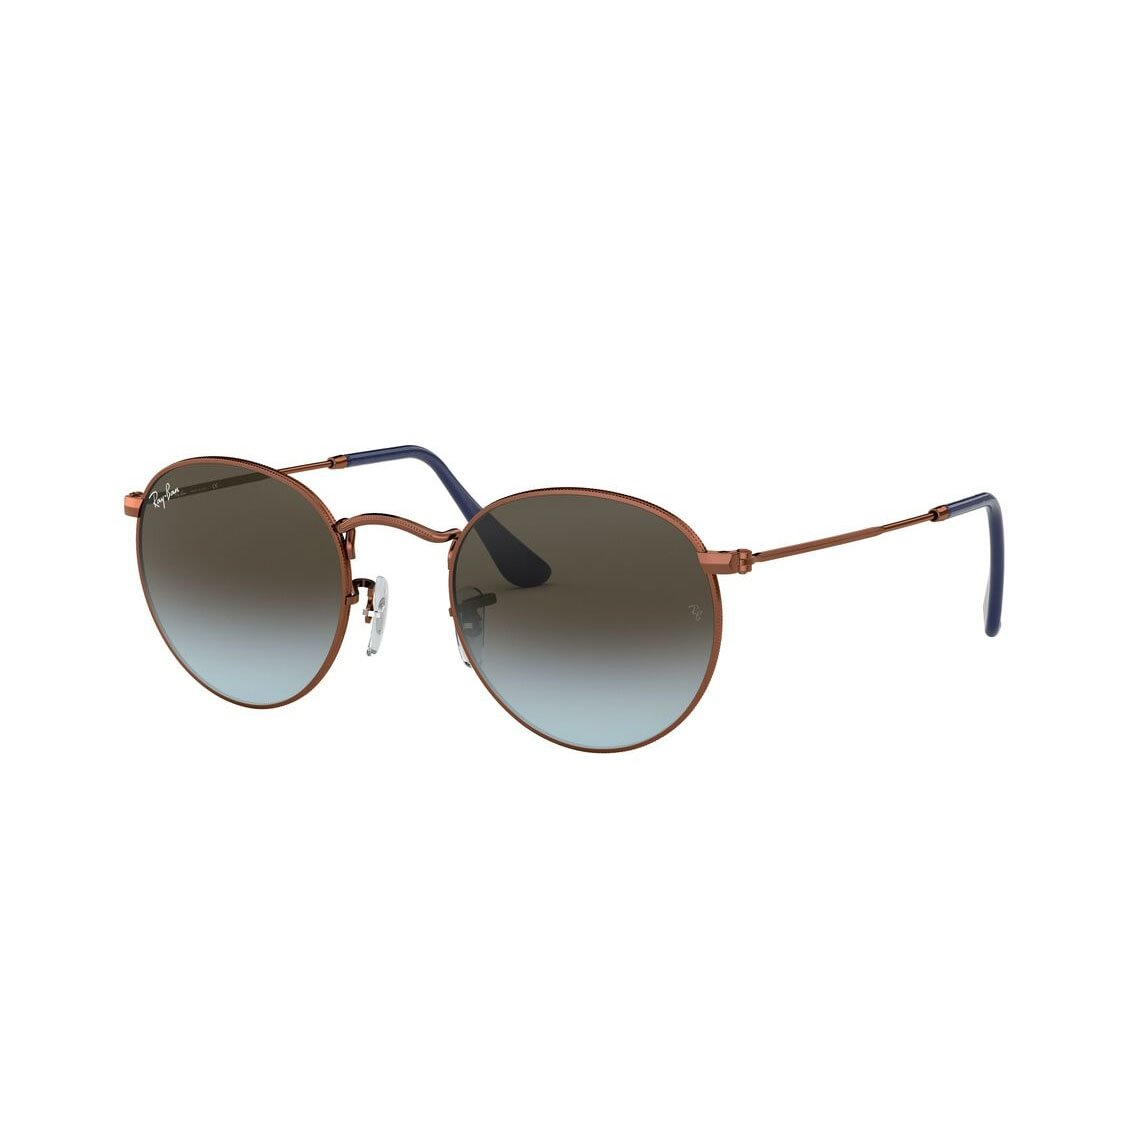 Ray-Ban Round metal RB3447 900396 47